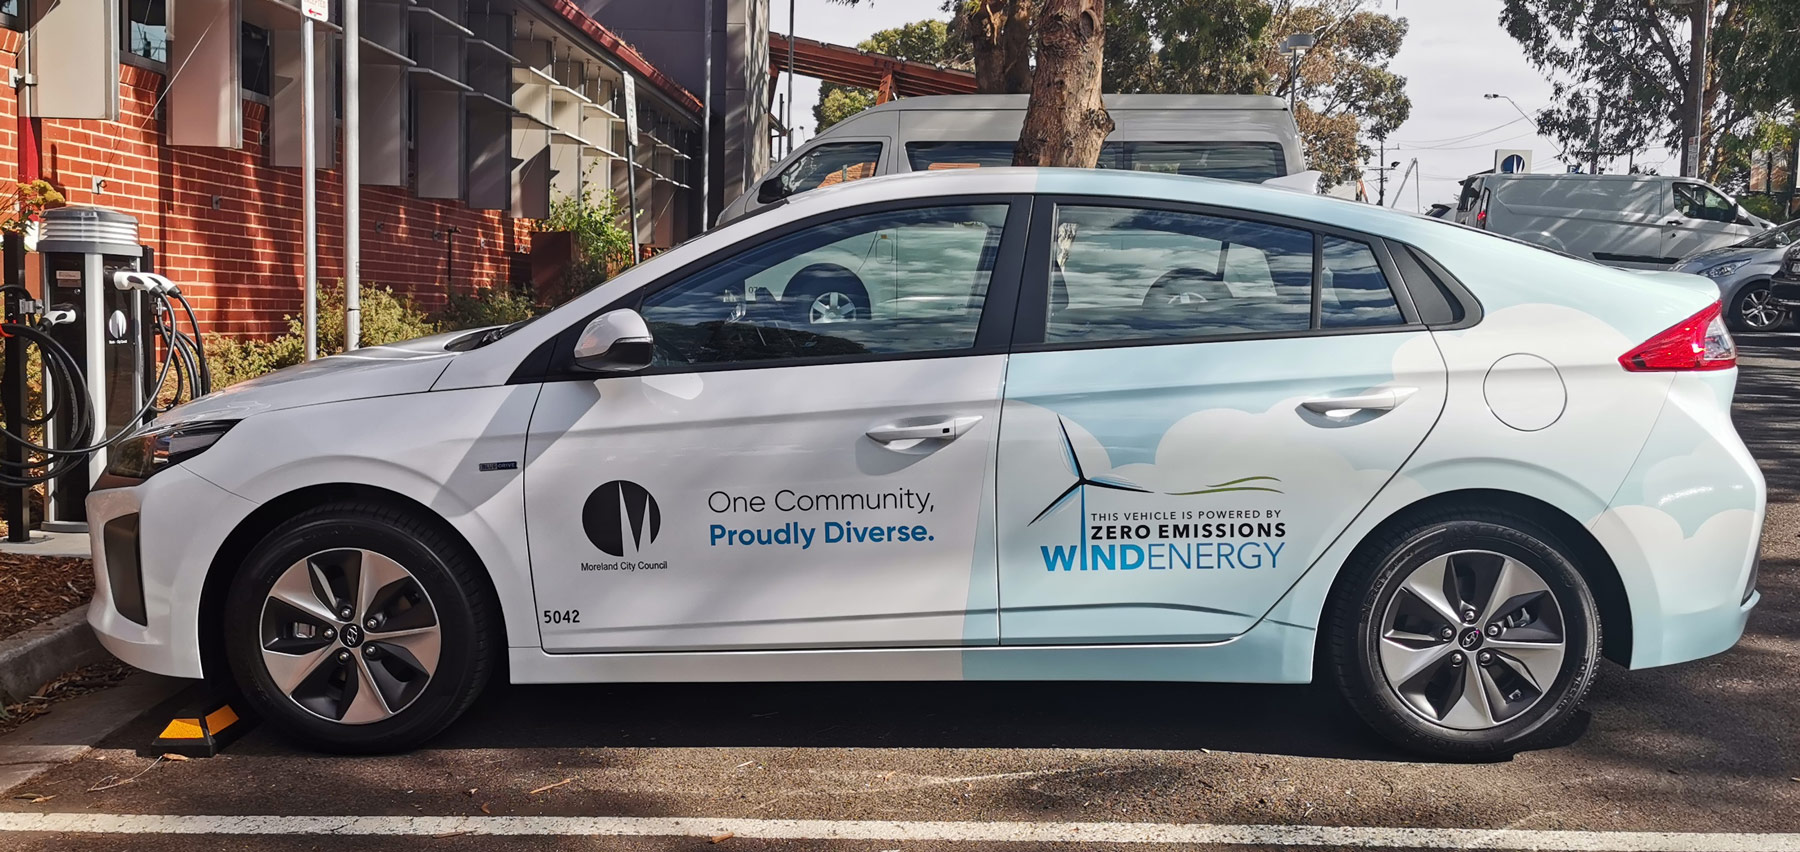 Electric car with Moreland Council logo and Crowlands Wind Farm decal